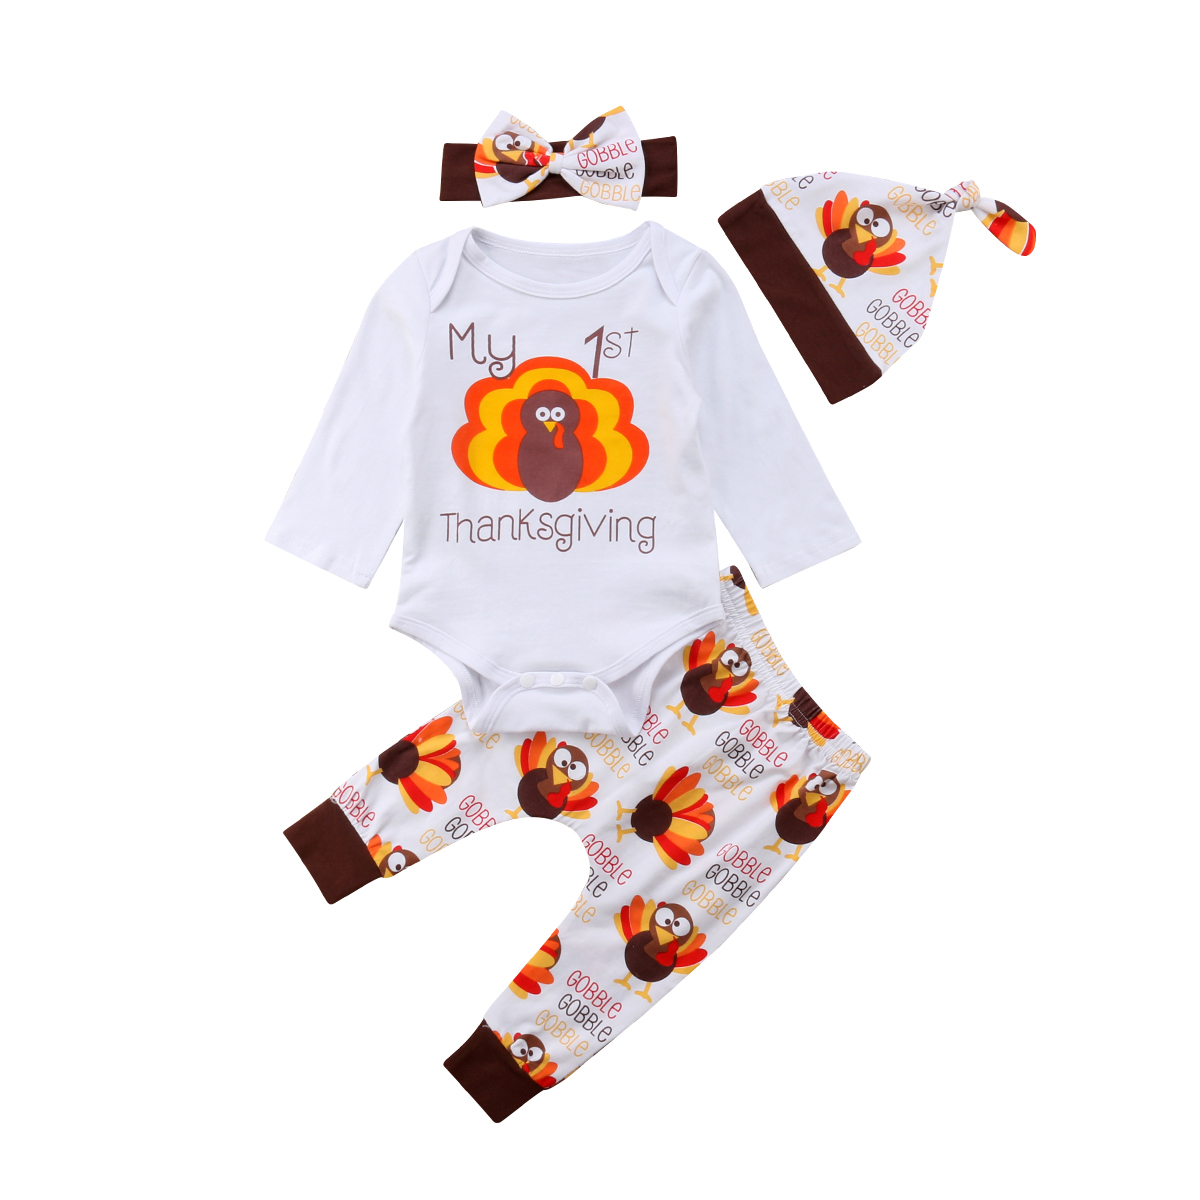 Newborn Infant Baby Girl Thanksgiving Outfit Clothes Romper Tops+Pants+Hat Set